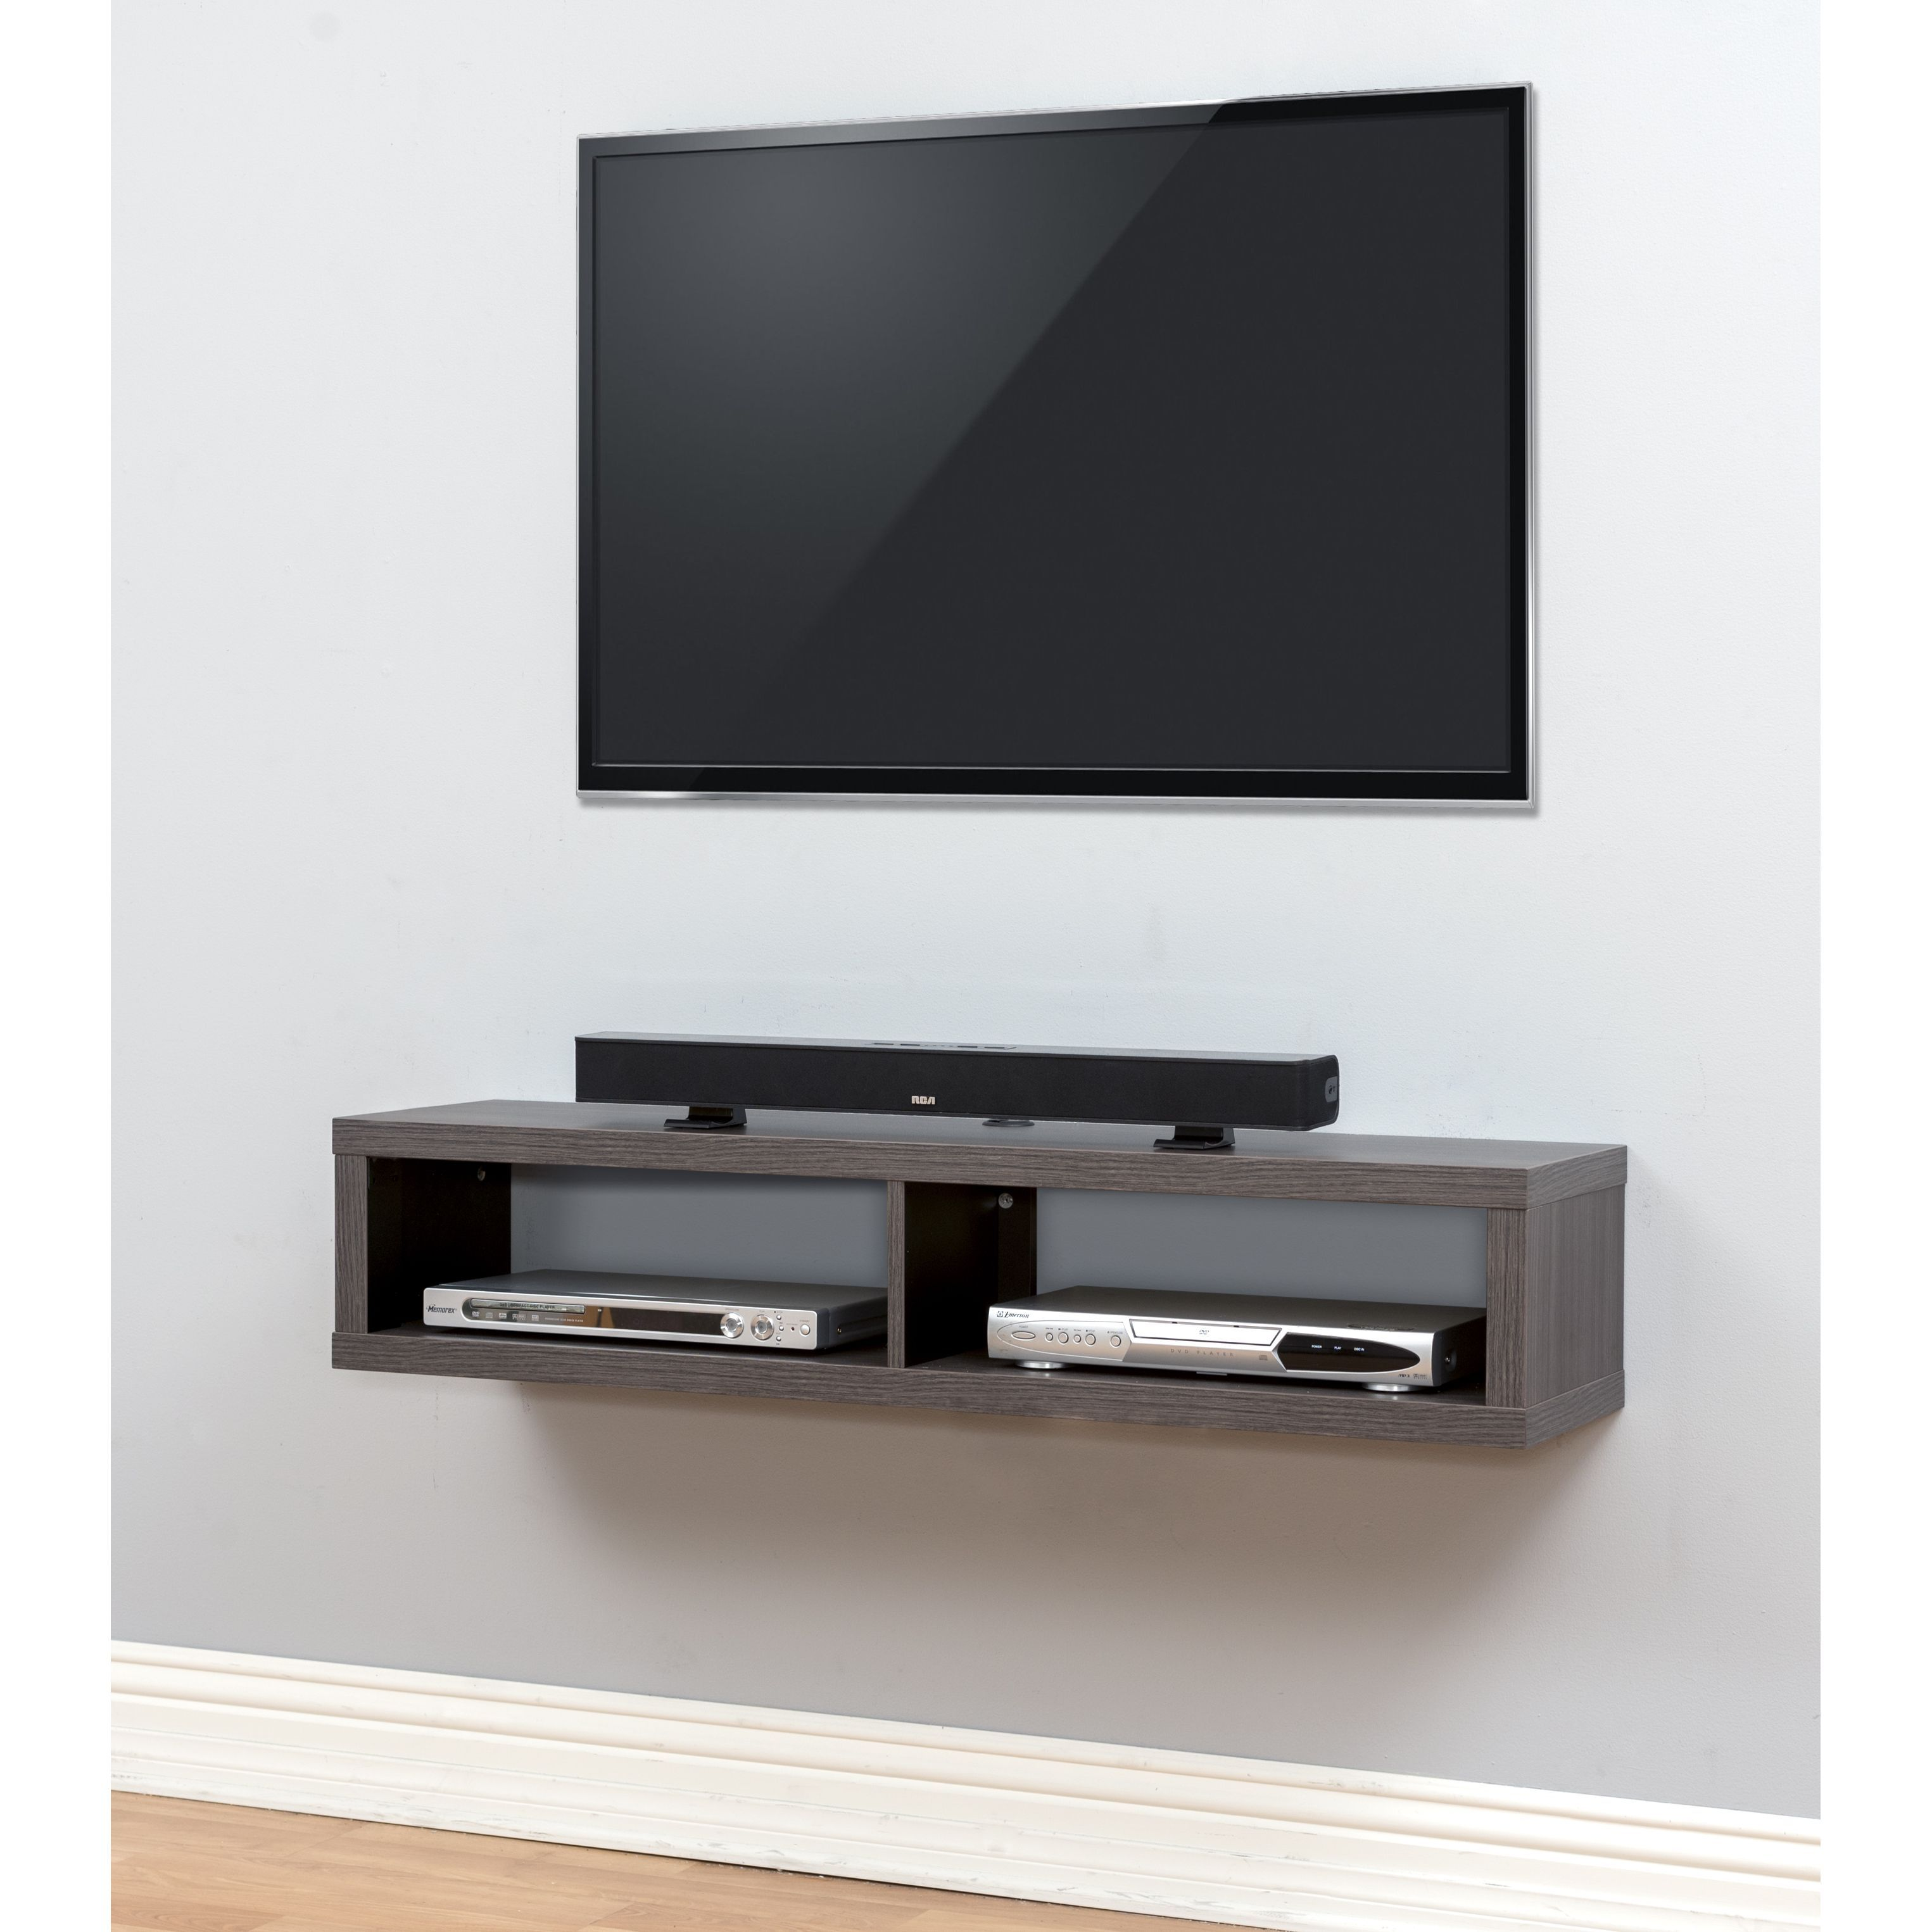 mounted tv ideas for small living room tv wall mount ideas choose lcd tv wall mount design for your modern living room ideas pinterest tv wall